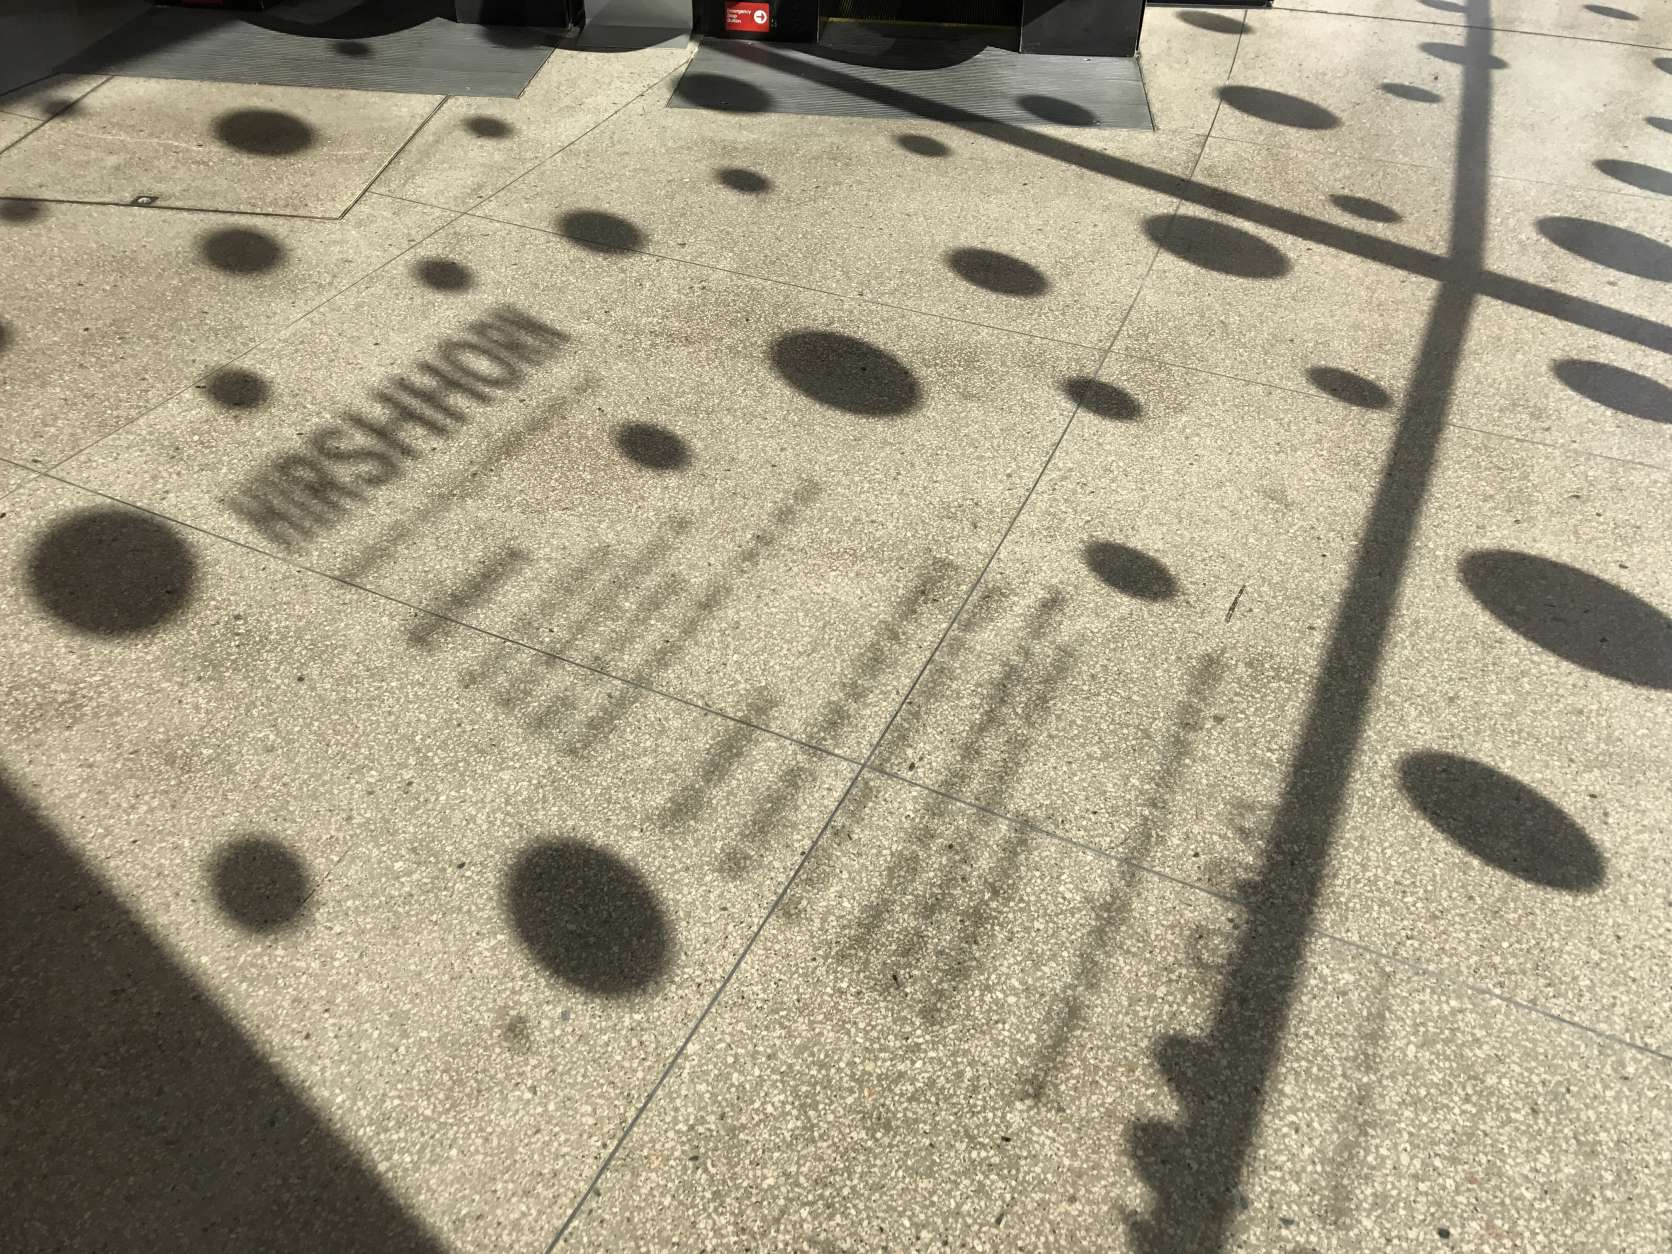 A reflection of the Hirshorn Collection's front door in the afternoon sun. (WTOP/Megan Cloherty)